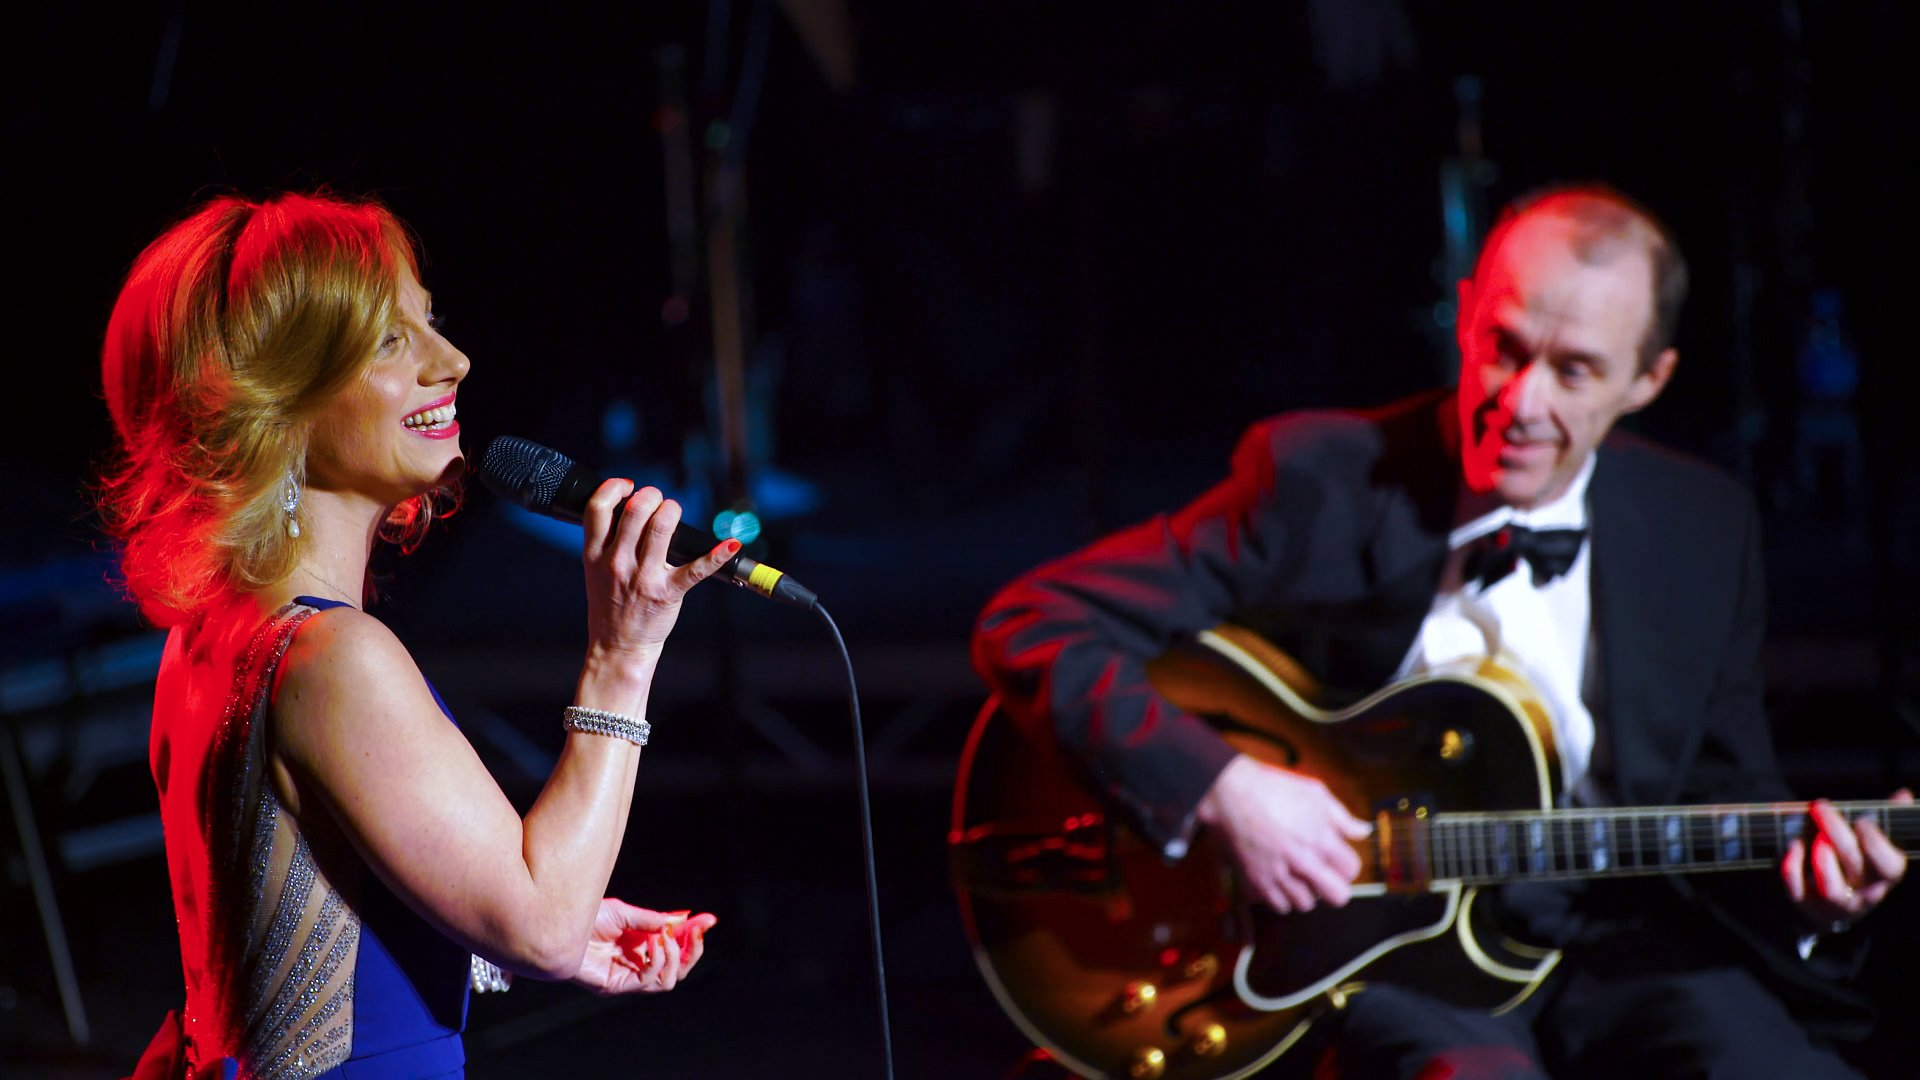 On stage with Liza Pulman